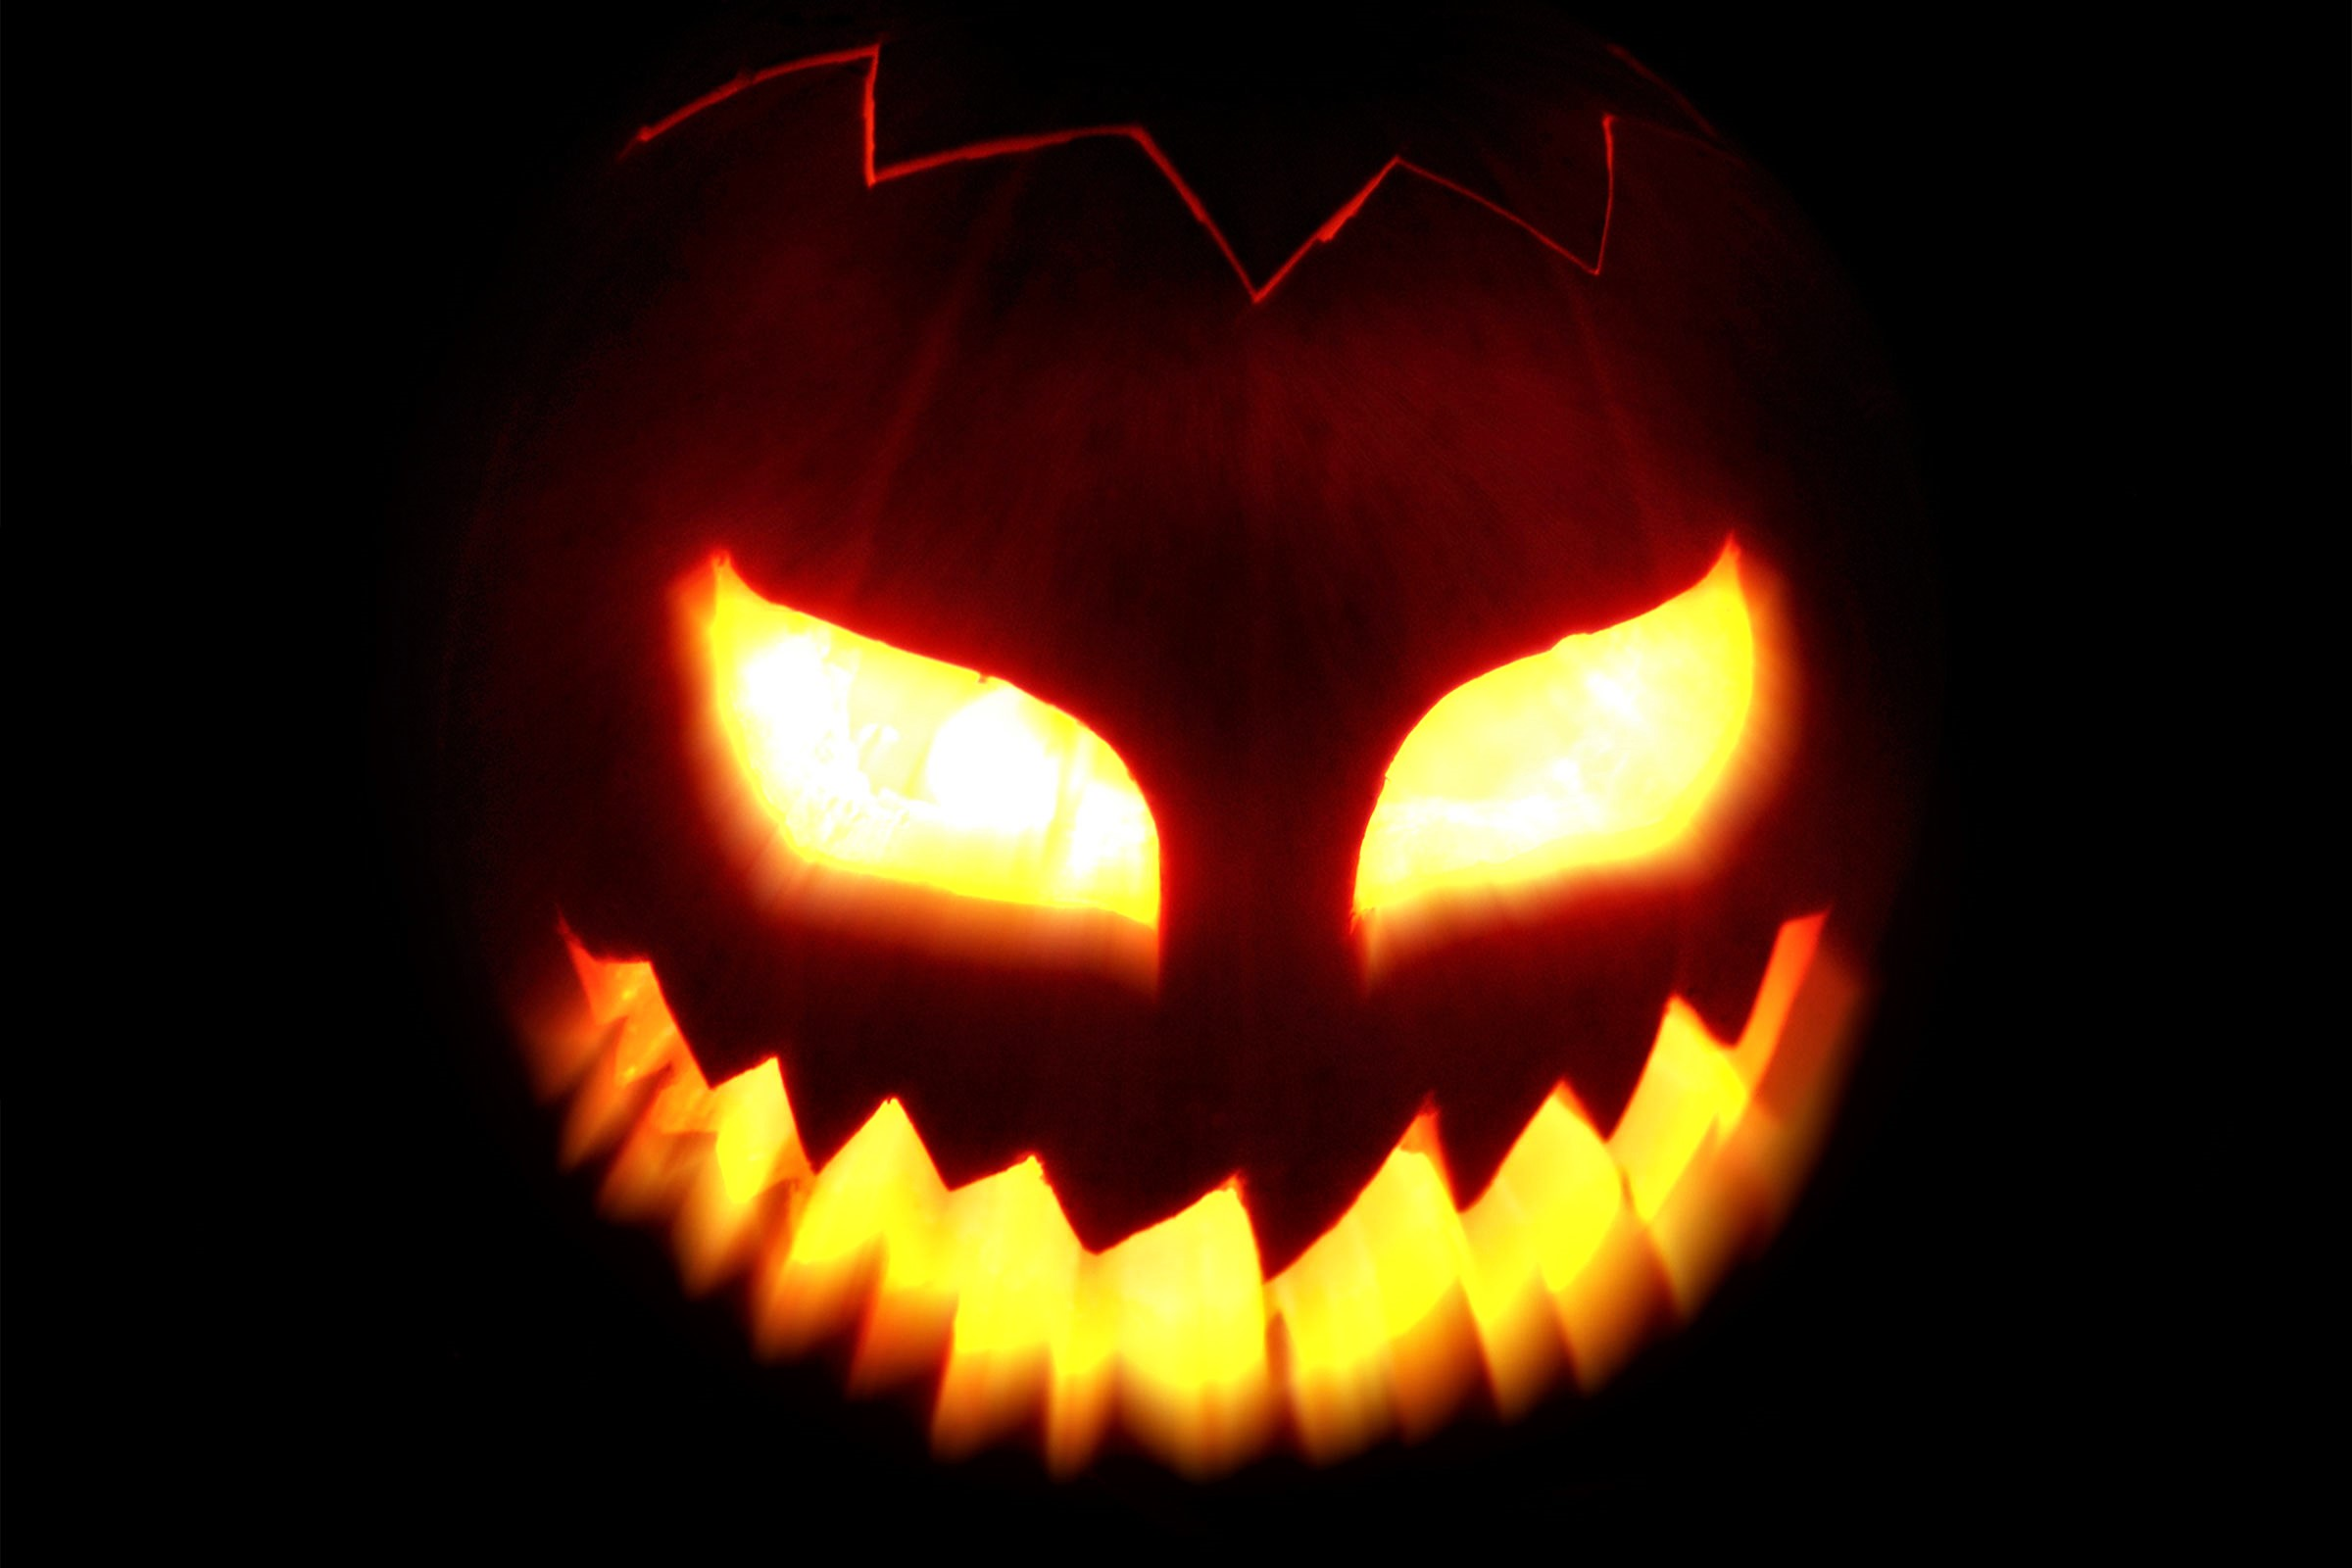 halloween full hd wallpaper and background image | 2400x1600 | id:876915